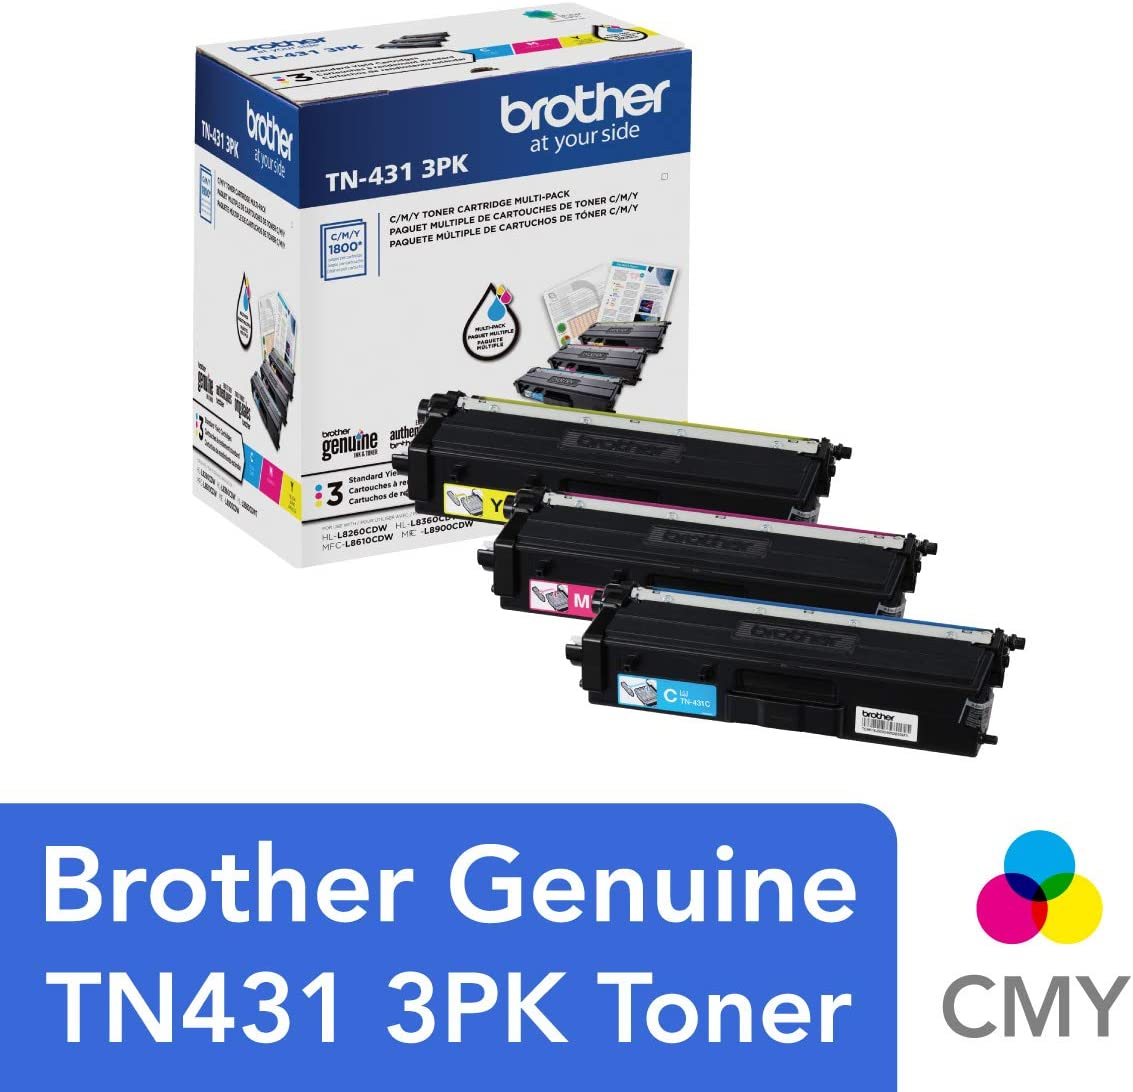 Toner Brother TN-431 3PK. (Pack. 3)